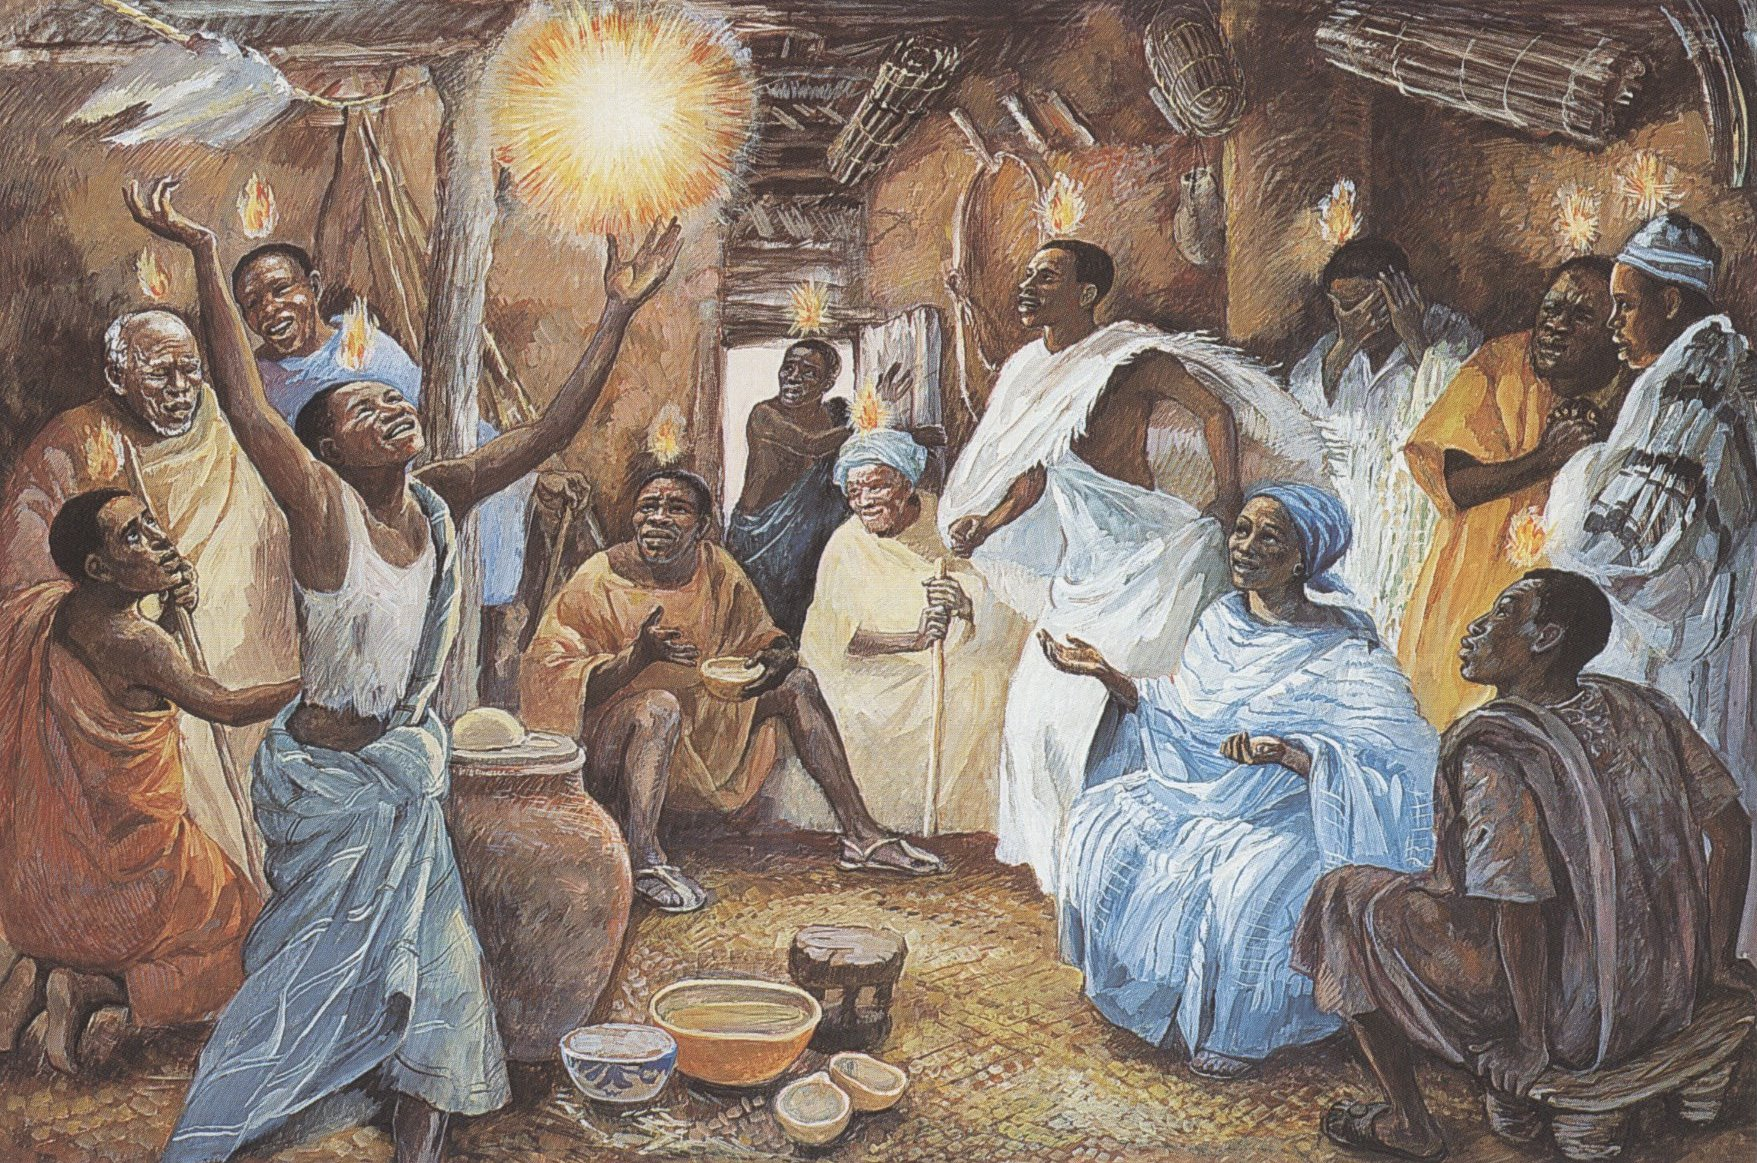 Pentecost depicted by  Jesus Mafa , a community in Cameroon. Used under a  Creative Commons Attribution-NonCommercial-ShareAlike 3.0 license .